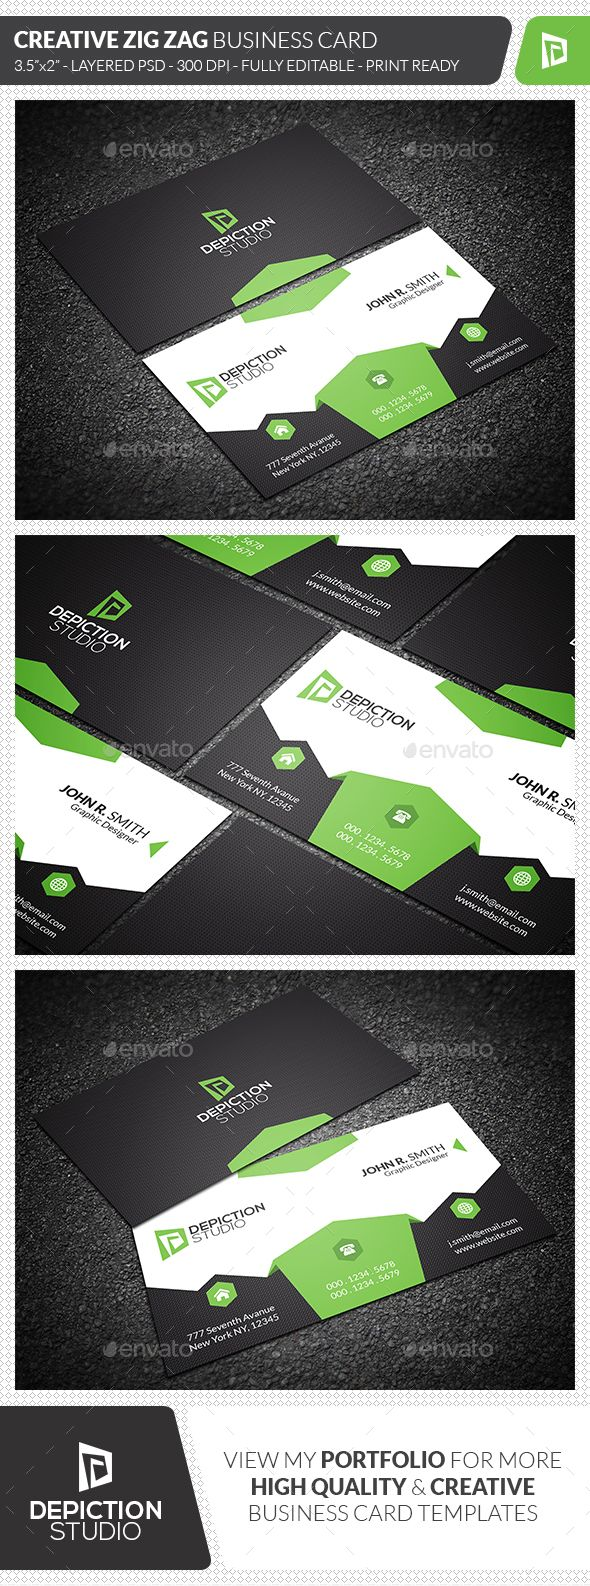 Creative Zig Zag Business Card Cleanses Creative And Template - 35 x2 business card template